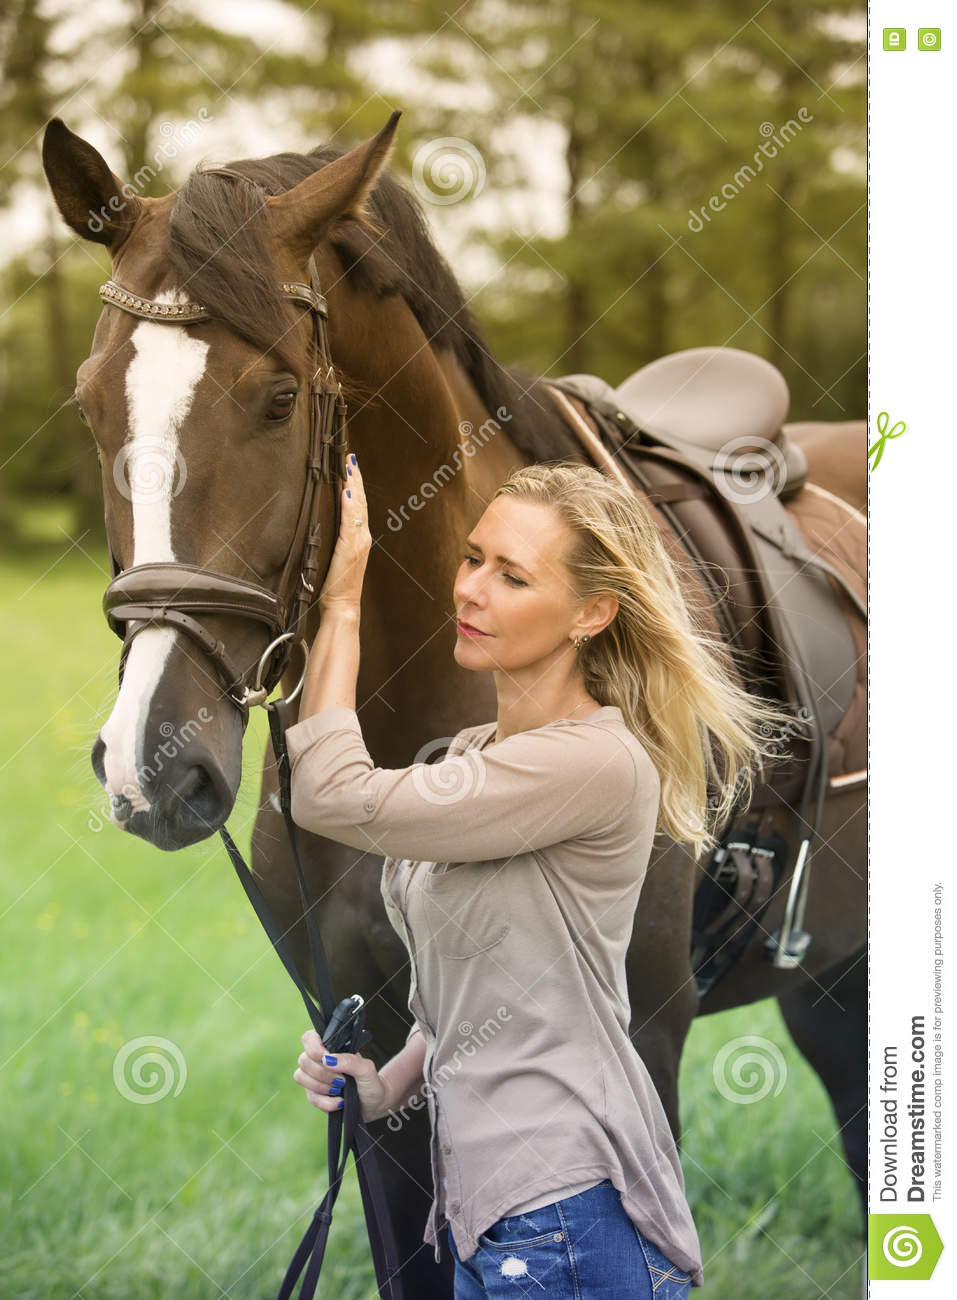 Blond woman and her horse in nature